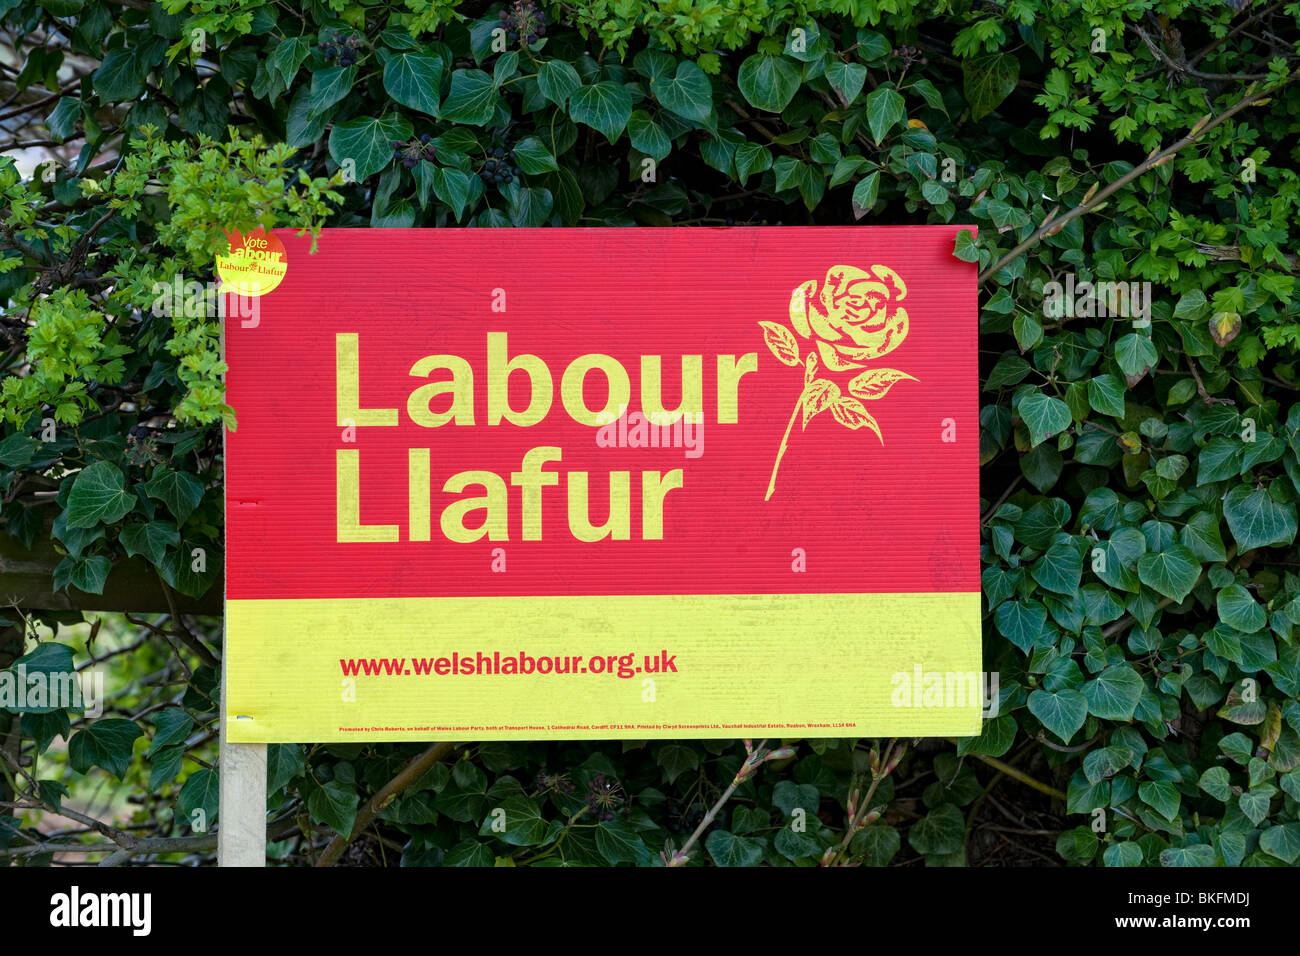 Welsh Labour Party sign being displayed during a General Election - Stock Image